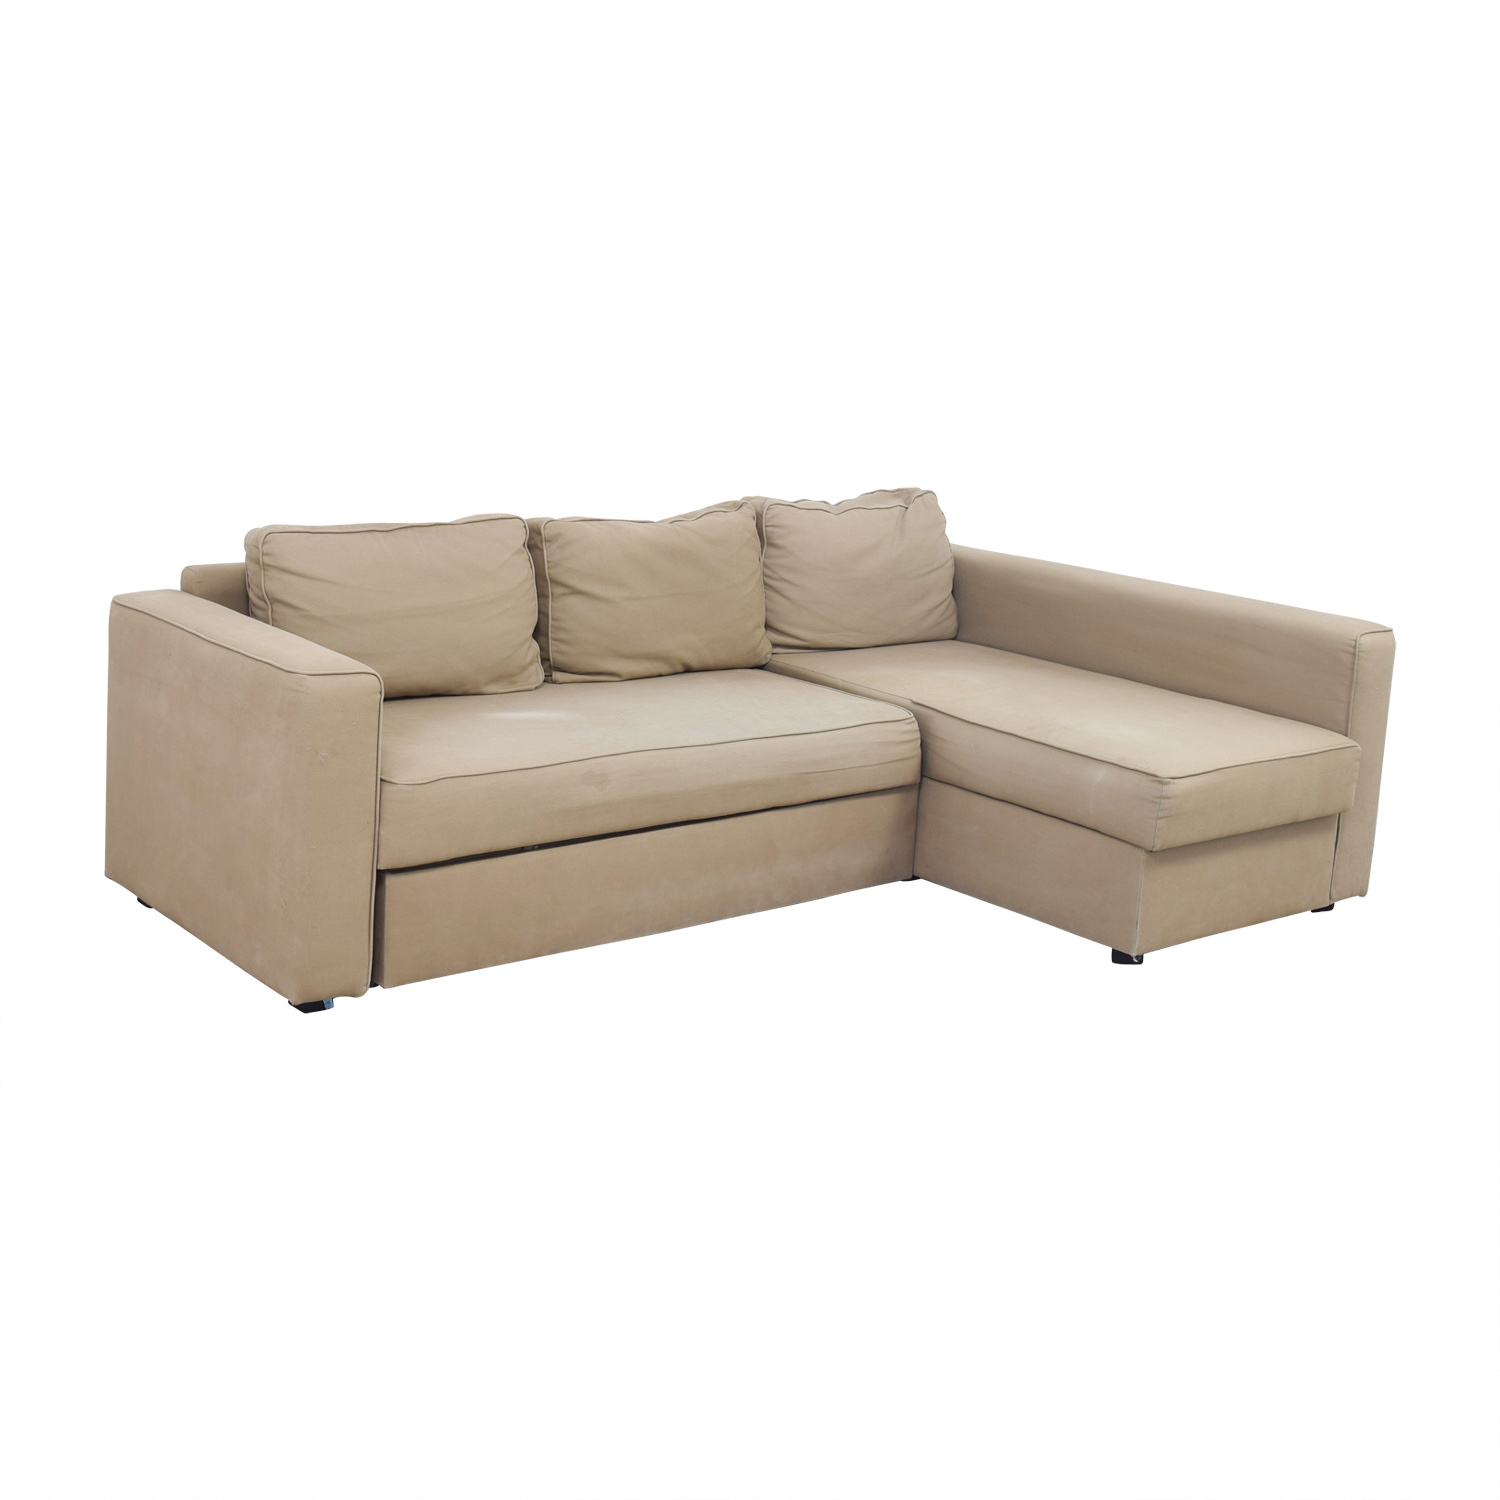 manstad sofa bed small beds for rooms ikea sleeper with chaise and storage